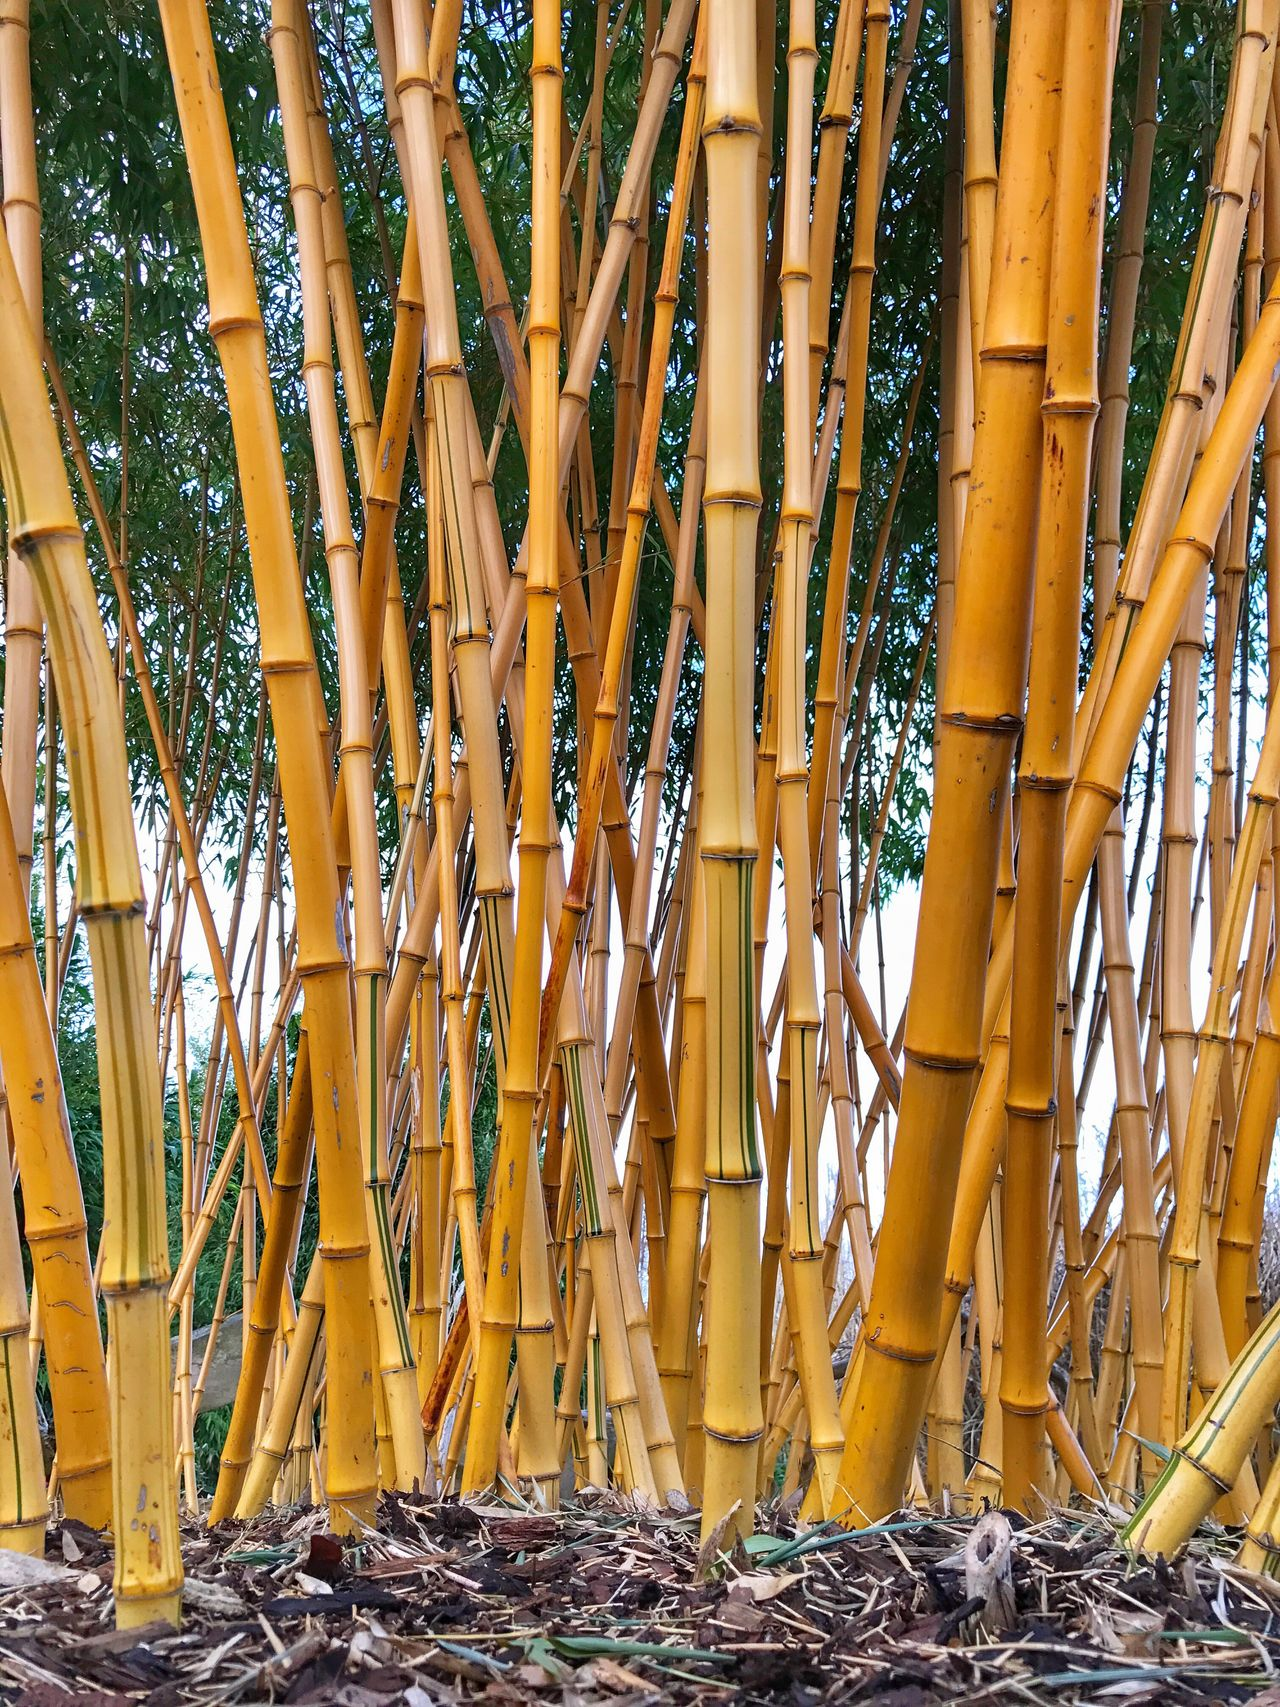 Bamboozled Bamboo - Plant No People Outdoors Day Bamboo Grove EyeEm EyeEm Nature Lover EyeEmBestPics IPhone EyeEm Gallery Eye4photography  IPhoneography Iphonephotography EyeEm Best Shots - Nature Plant Low Angle View Beauty In Nature Cheshire Chesterzoo Nature Tree Growth IPhone Photography